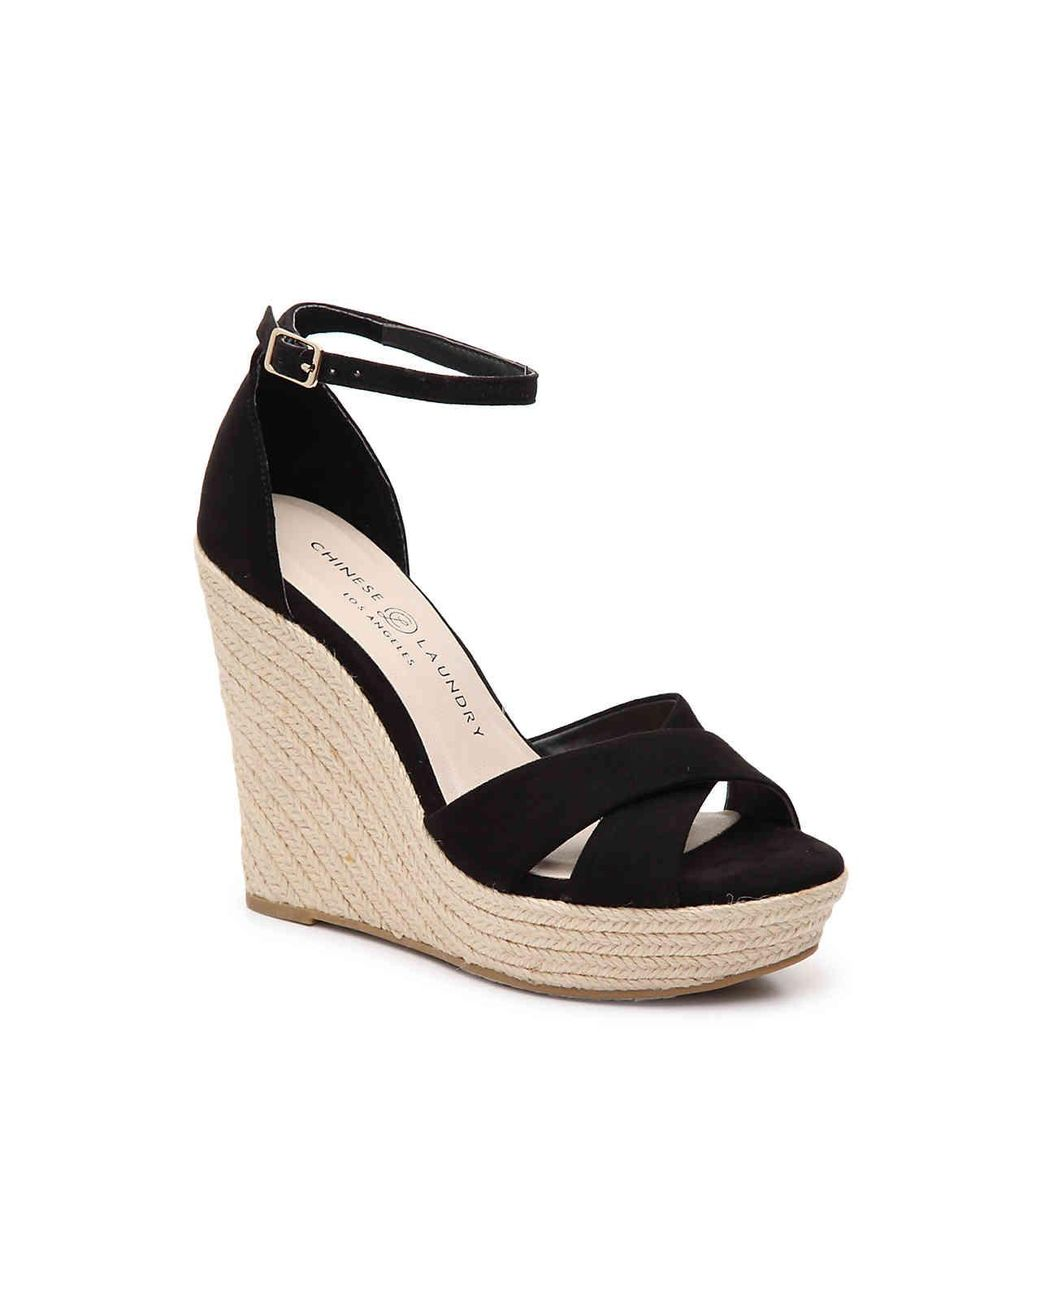 21b1cdc6ed Lyst - Chinese Laundry Morgan Wedge Sandal in Black - Save 38%